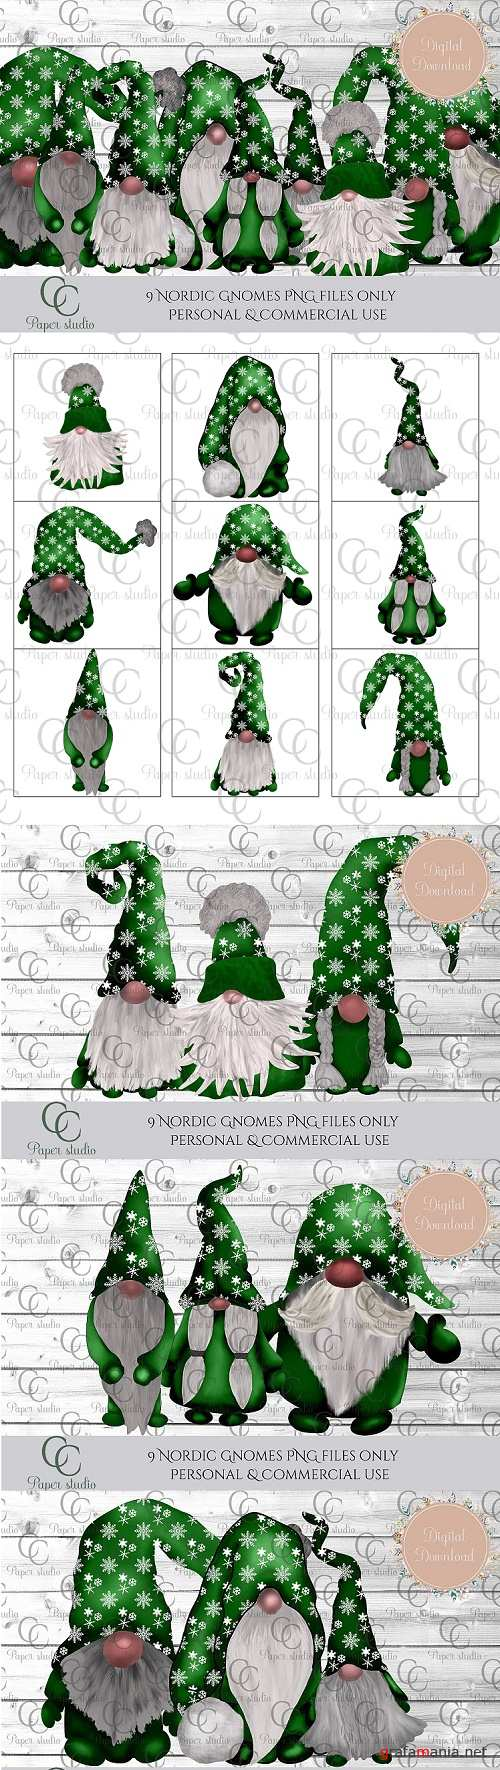 Scandinavian Tomte Gnomes - Christmas green snowflakes - 381637